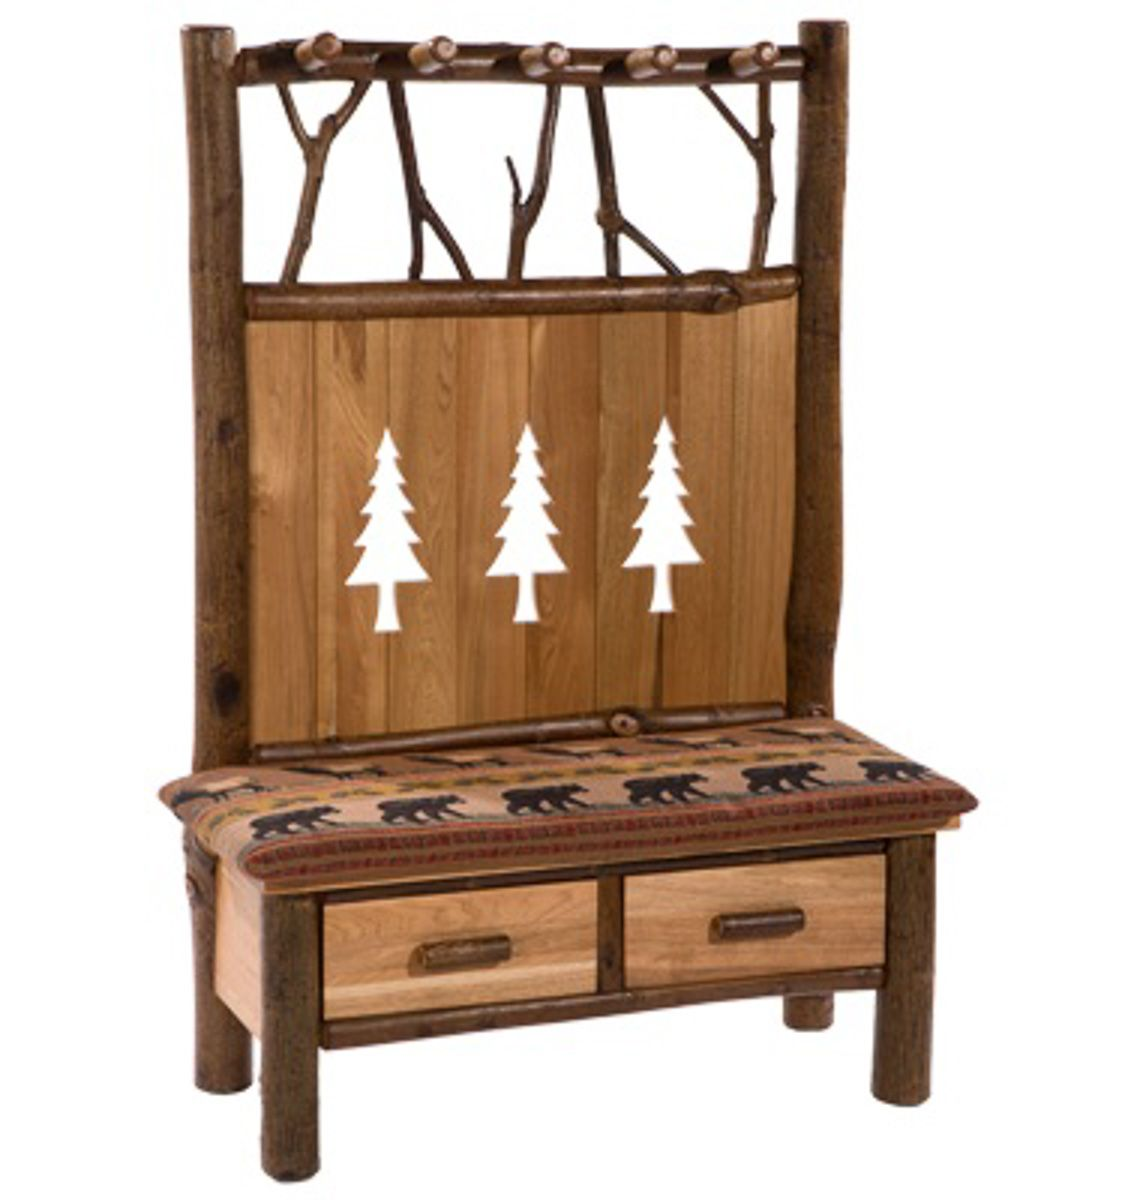 Incredible Storage Bench 2 Drawers And 5 Hook Coat Rack 599 00 Wood Machost Co Dining Chair Design Ideas Machostcouk